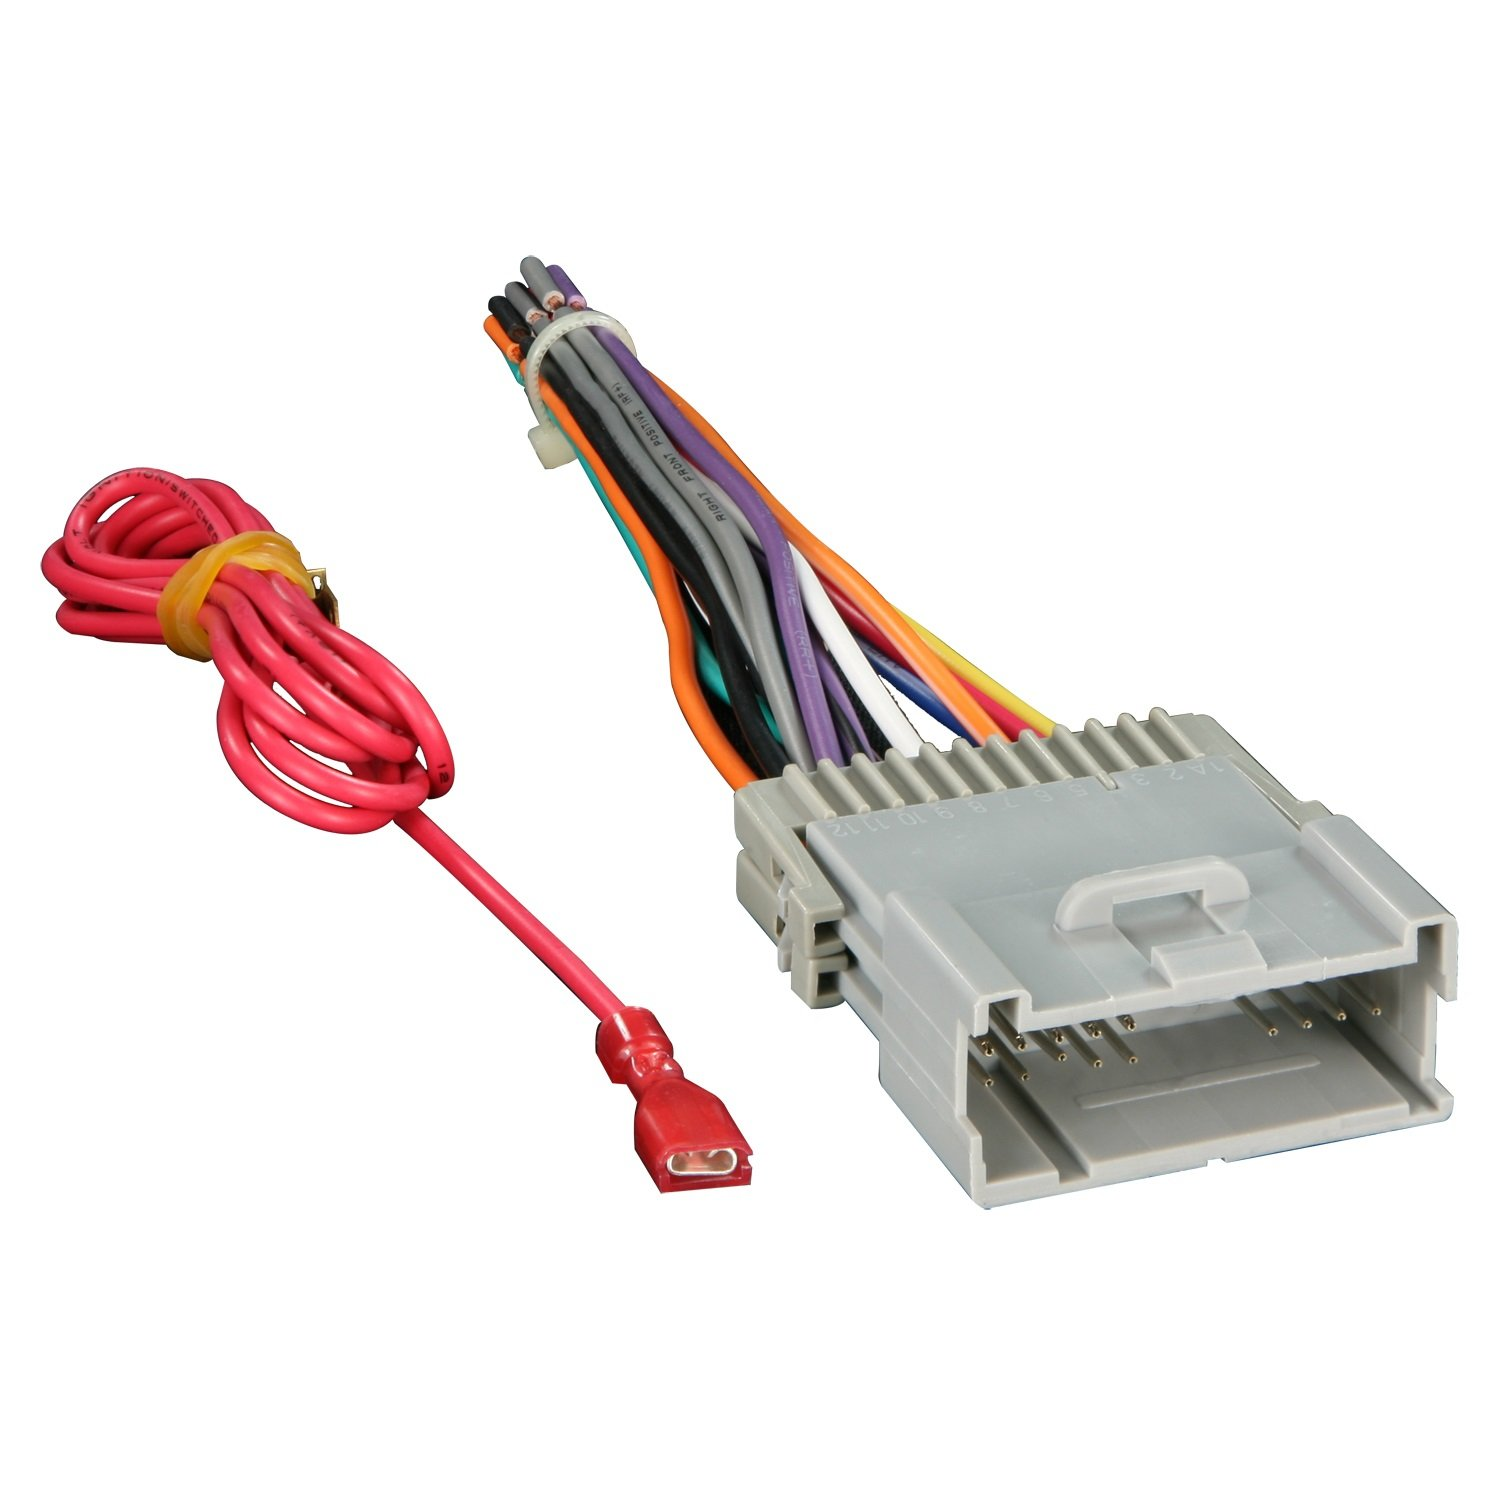 61eewxp9orL._SL1500_ amazon com metra 70 2003 radio wiring harness for gm 98 08  at mifinder.co